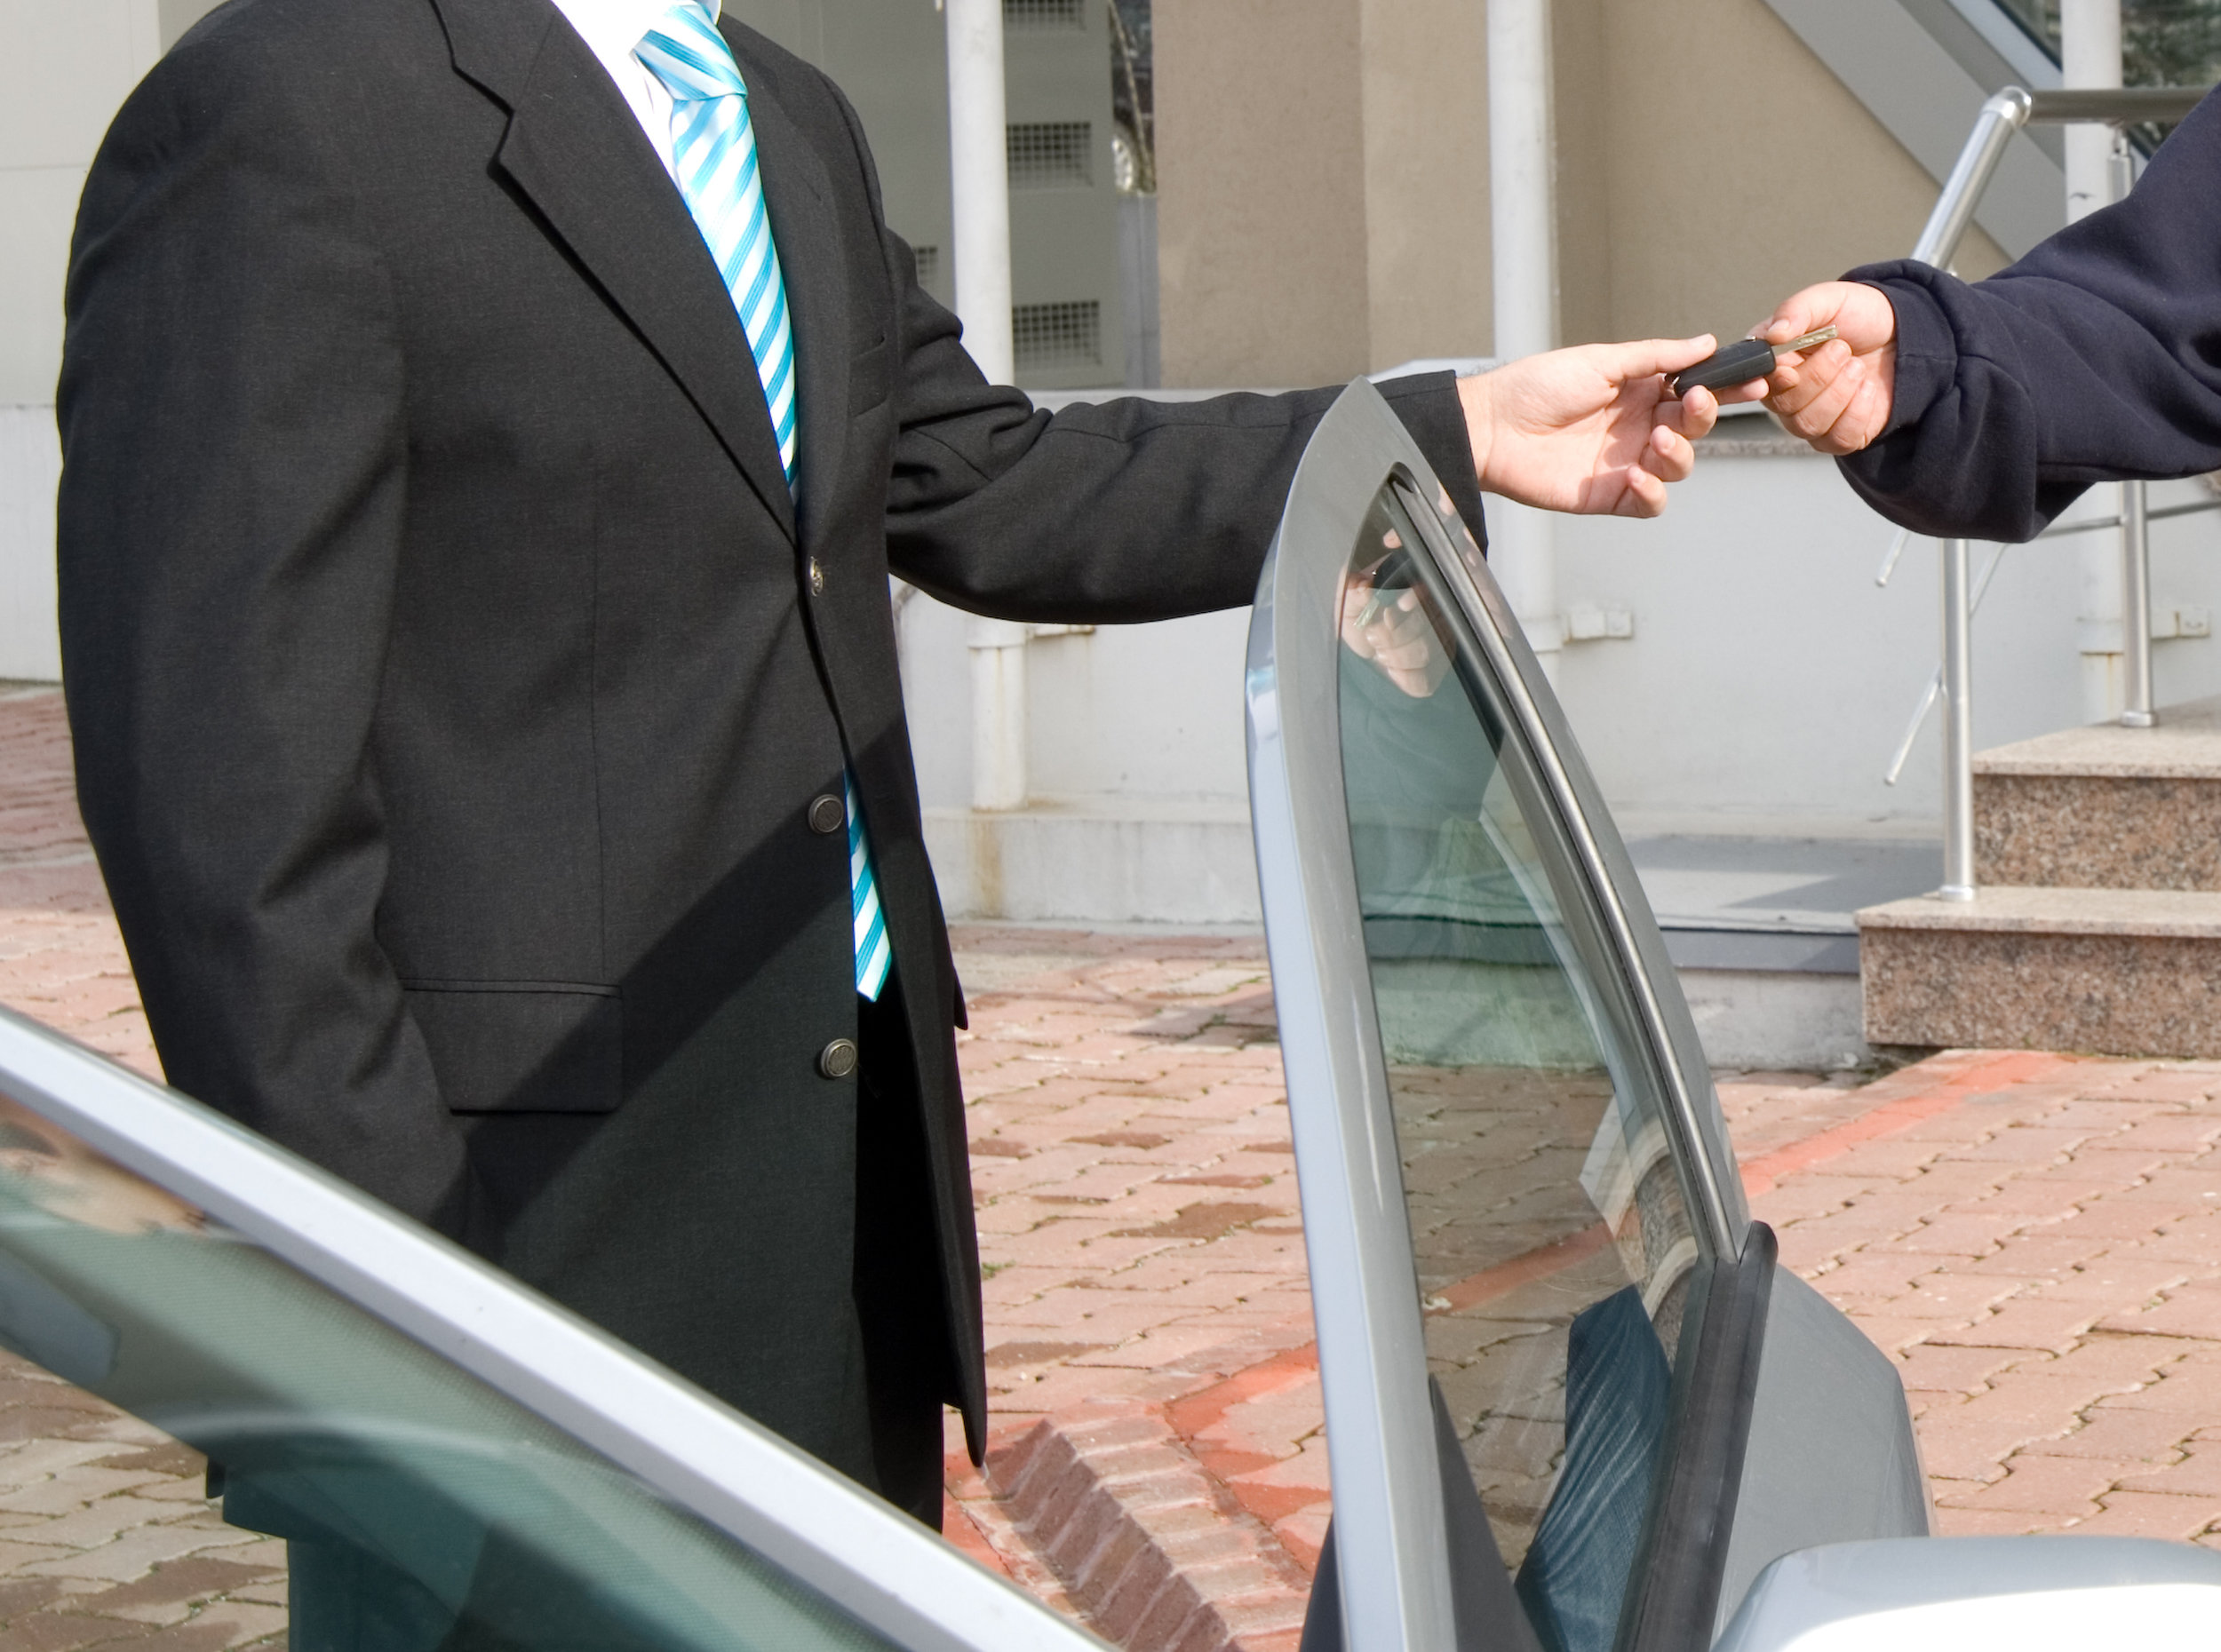 Complimentary Valet Parking - Valet Parking is on us! Let our Valet staff take care of you every time you visit us.